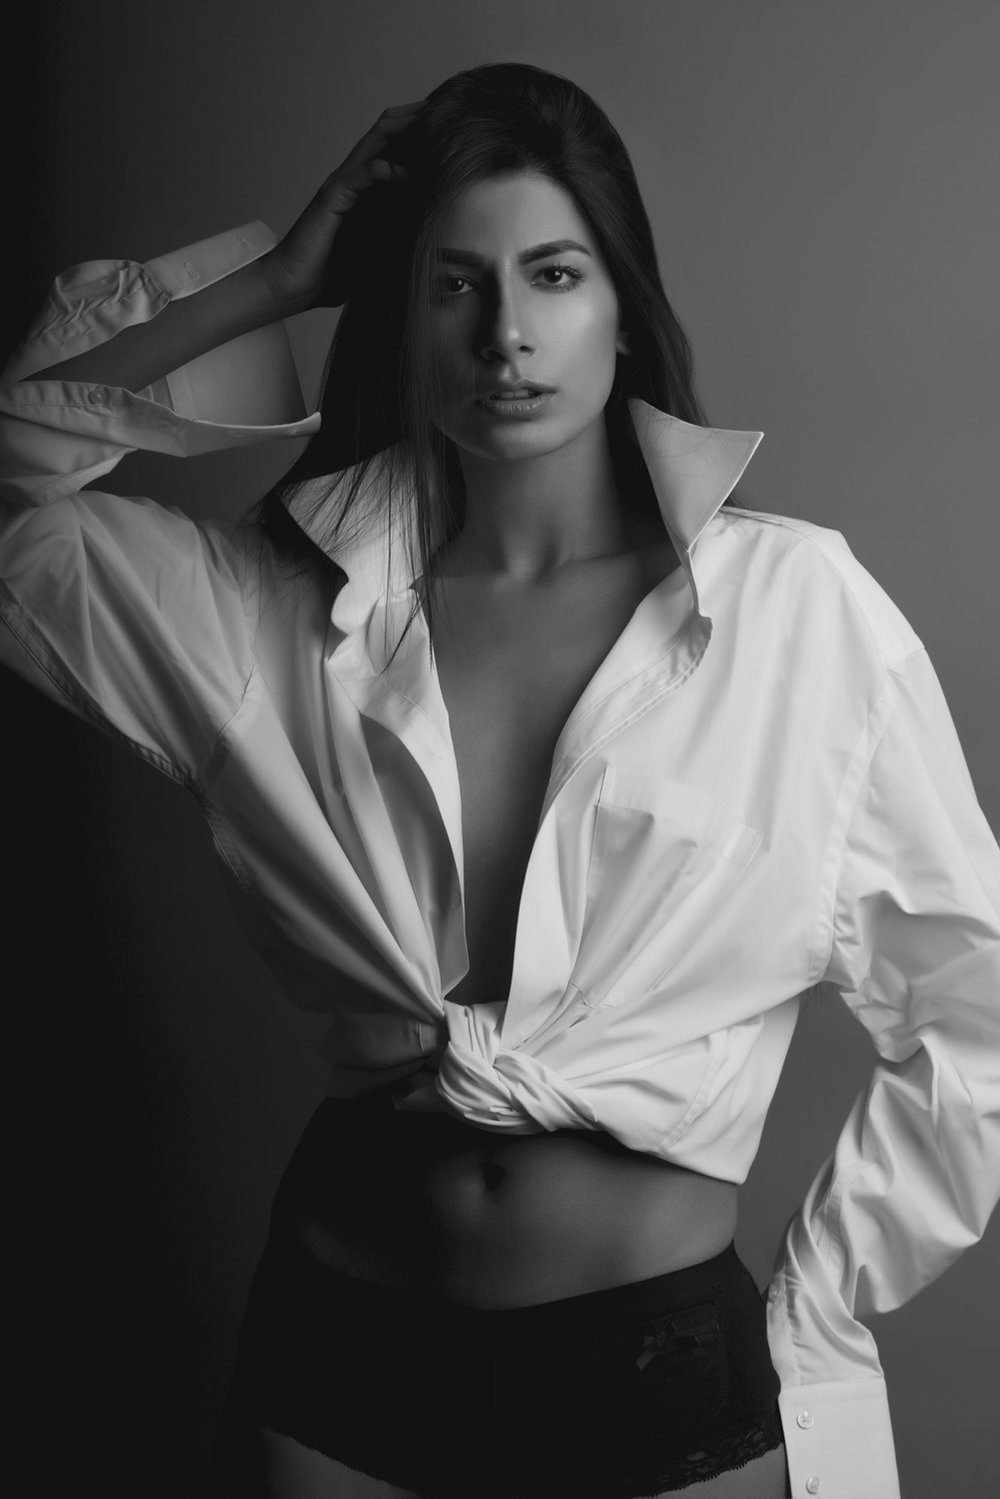 aasttha ssidana toabh talents aditya mendiratta fashion portfolio photographer new delhi 4